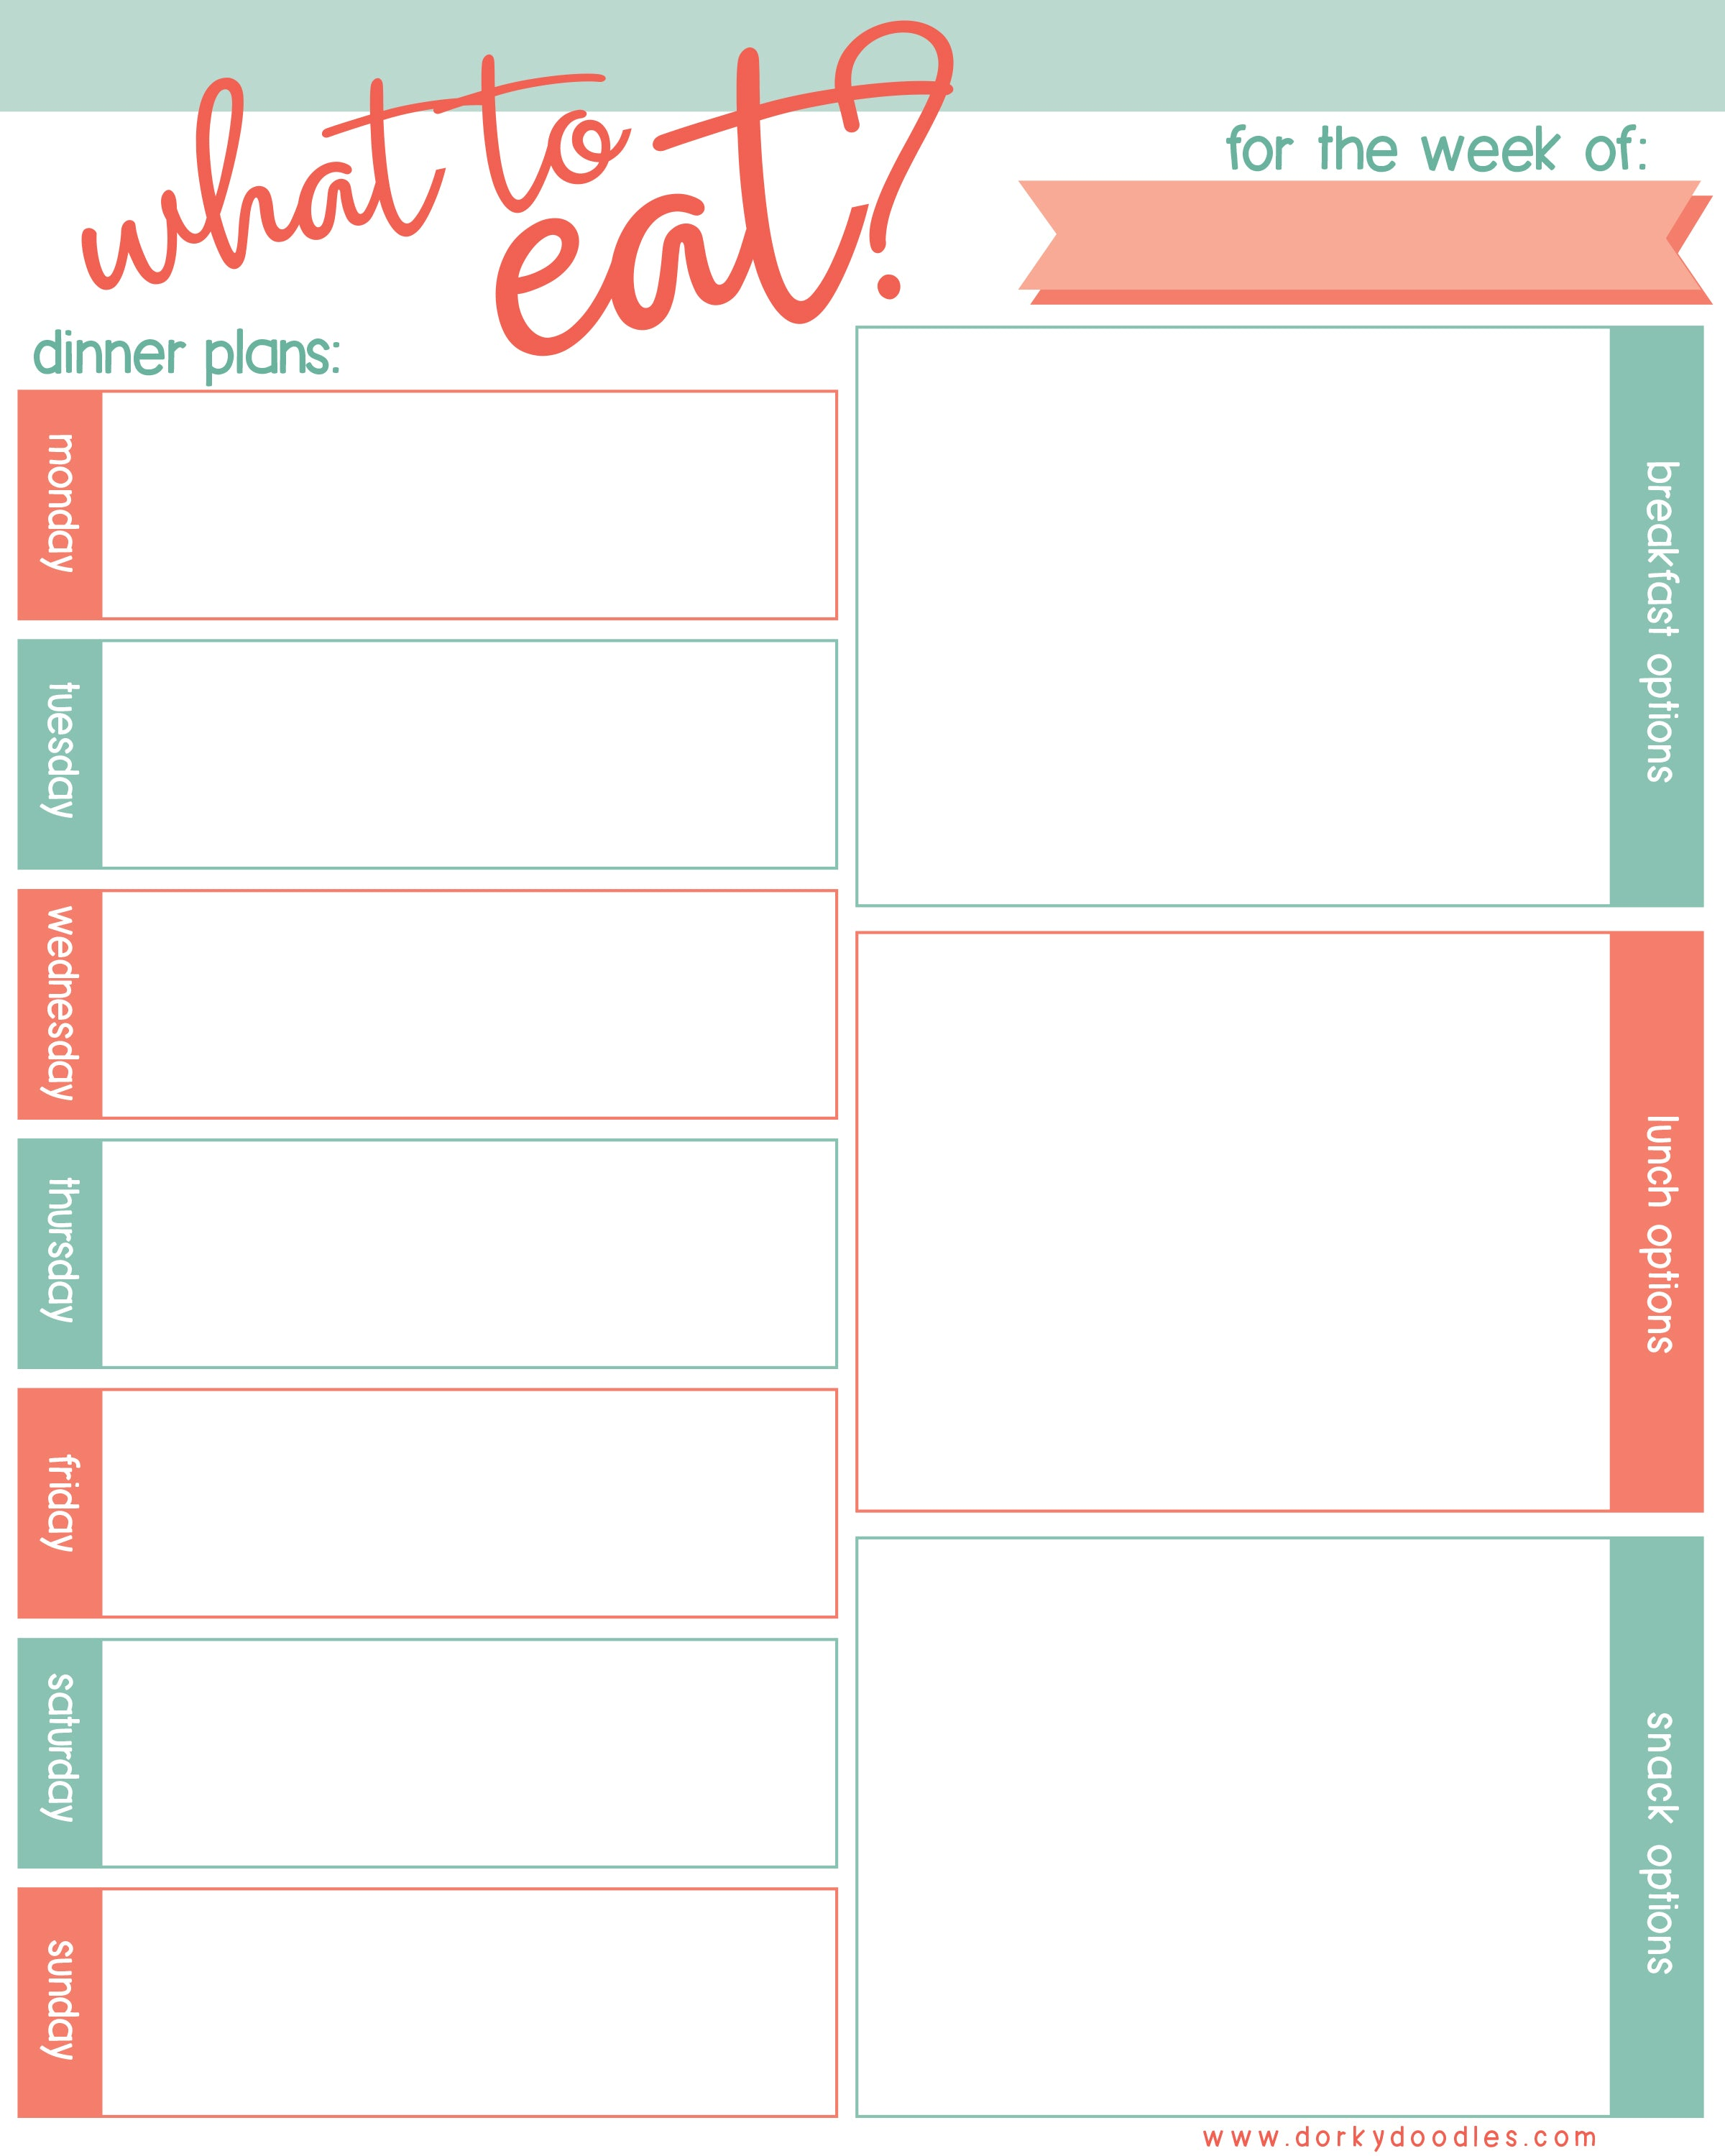 photograph regarding Weekly Meal Planning Printable identified as Weekly Dinner Planner Printable Dorky Doodles